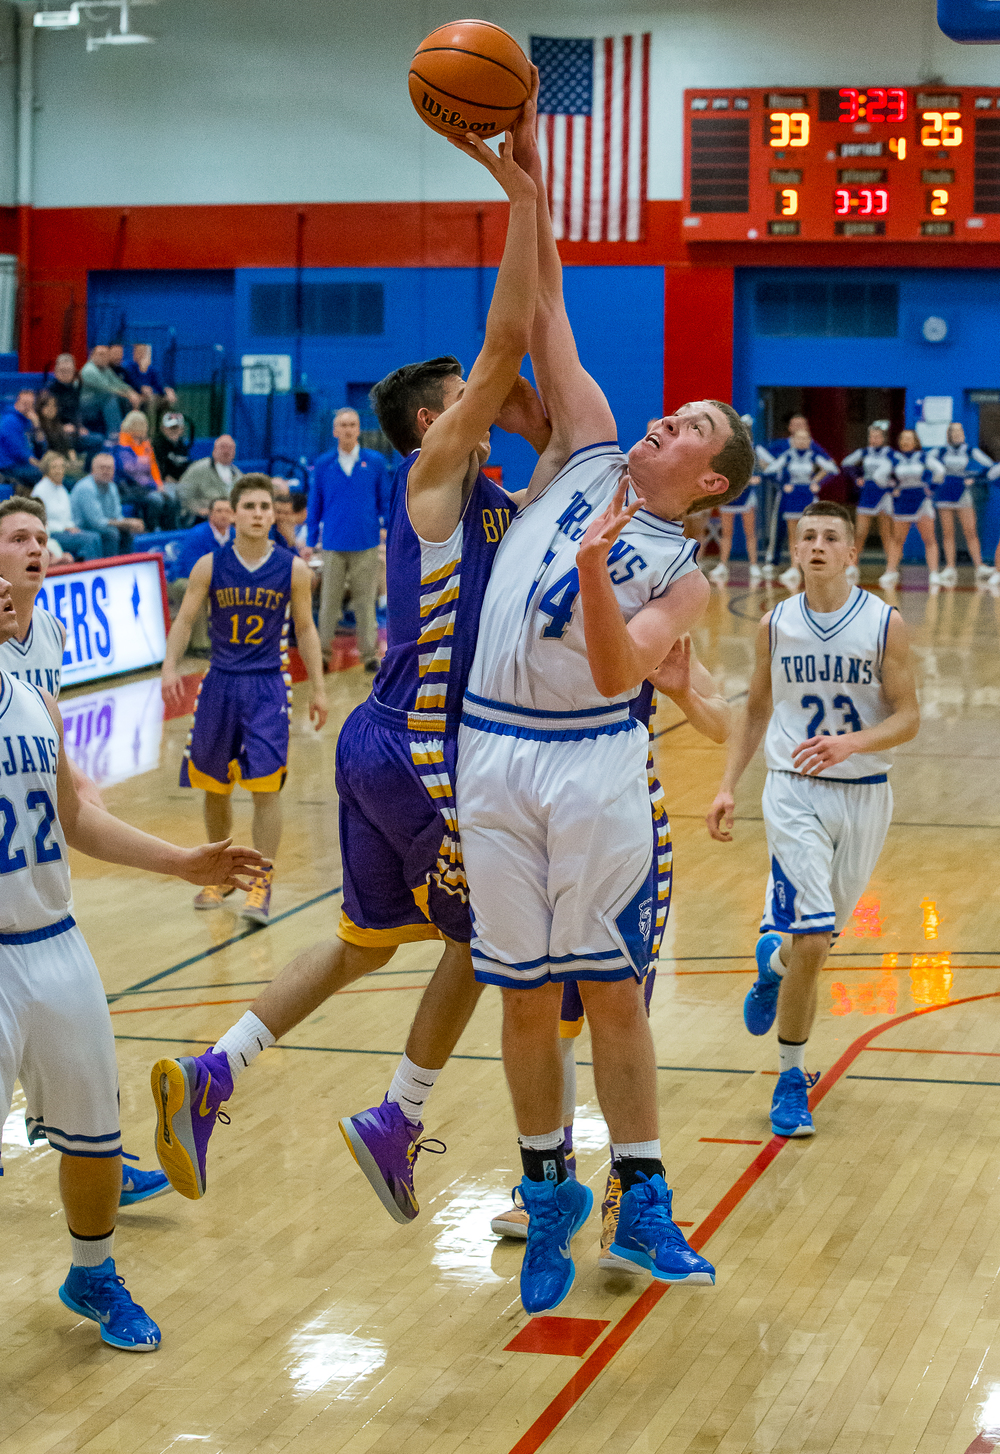 Auburn's Nate Brauer (34) gets called for a foul trying to block a shot from Williamsville's Ben Kovacevich (3) in the second half during the Sangamon County Tournament at  Lincoln Land Community College's Cass Gymnasium, Thursday, Jan. 15, 2015, in Springfield, Ill. Justin L. Fowler/The State Journal-Register